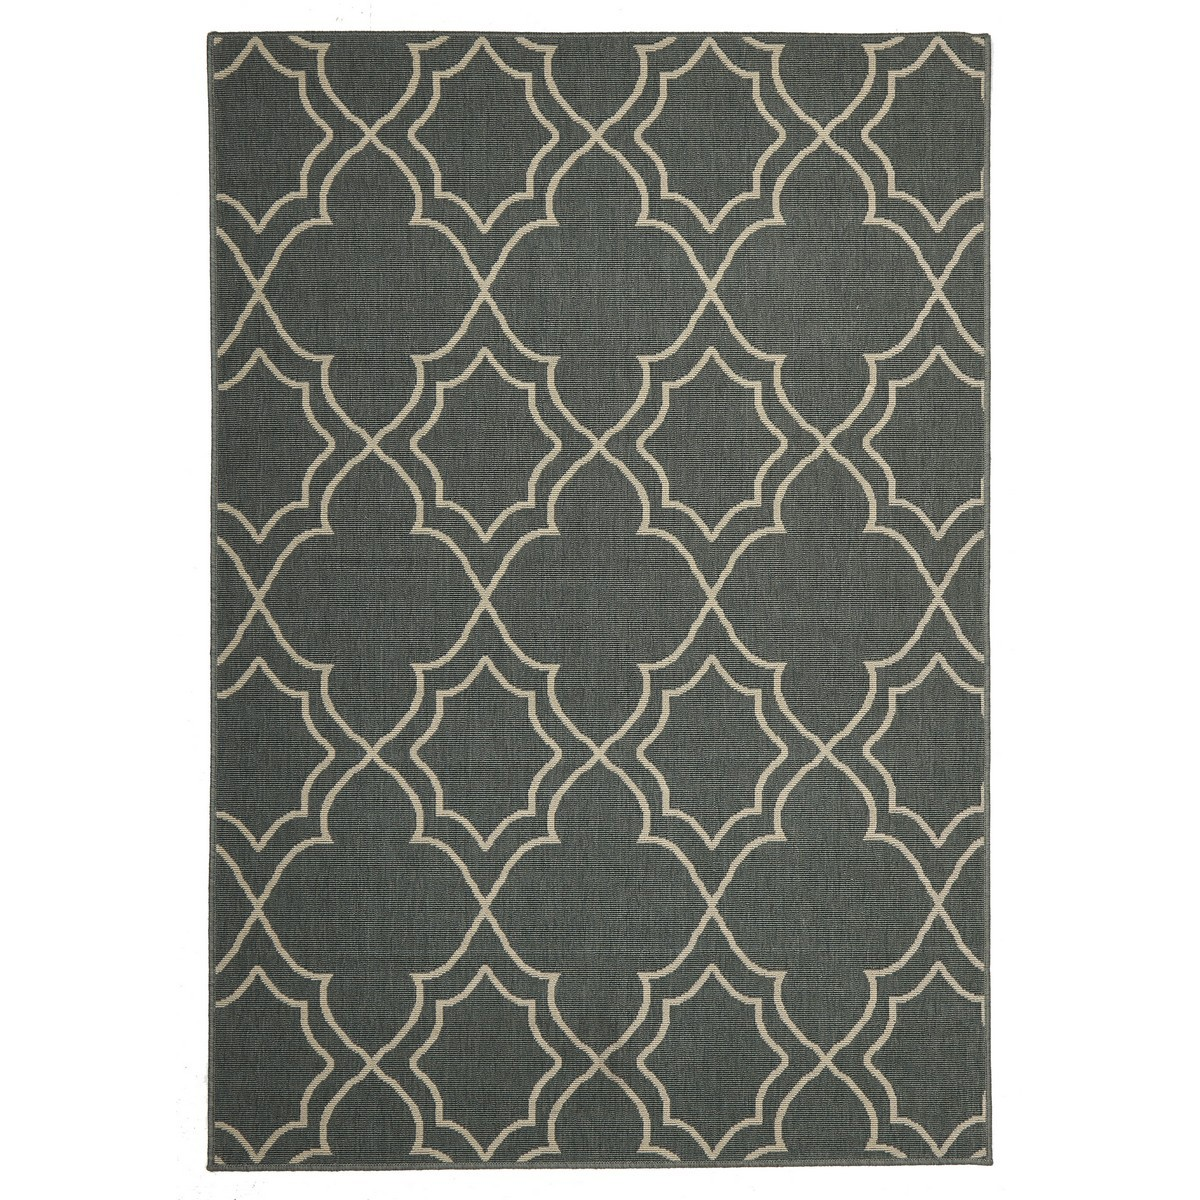 Alfresco Casablanca Egyptian Made Outdoor Rug, 160x110cm, Steel